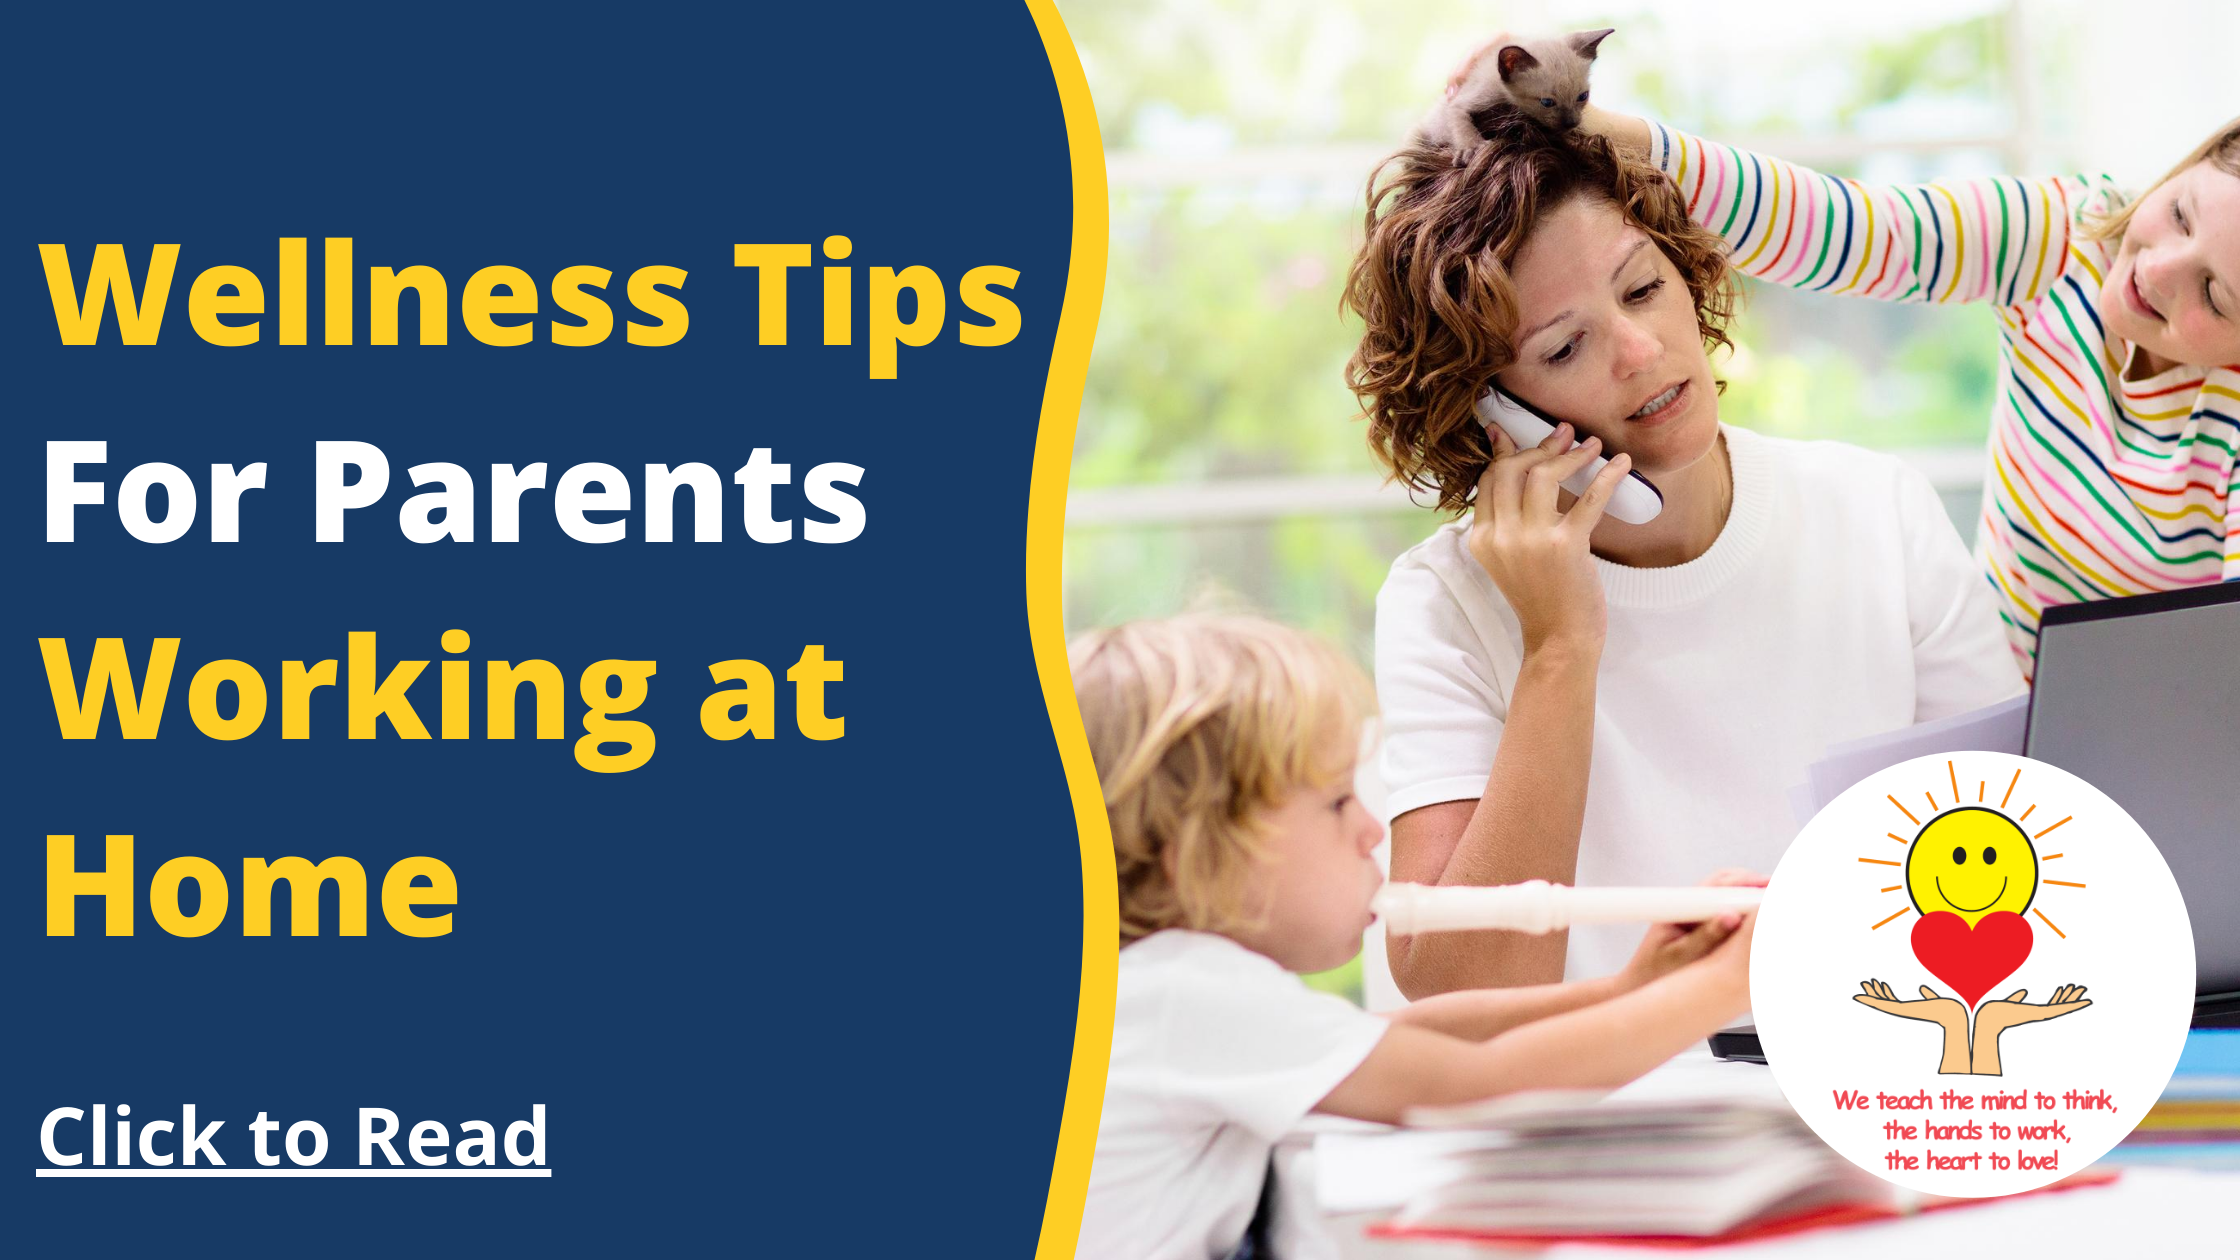 Wellness Tips for Parents Working at Home